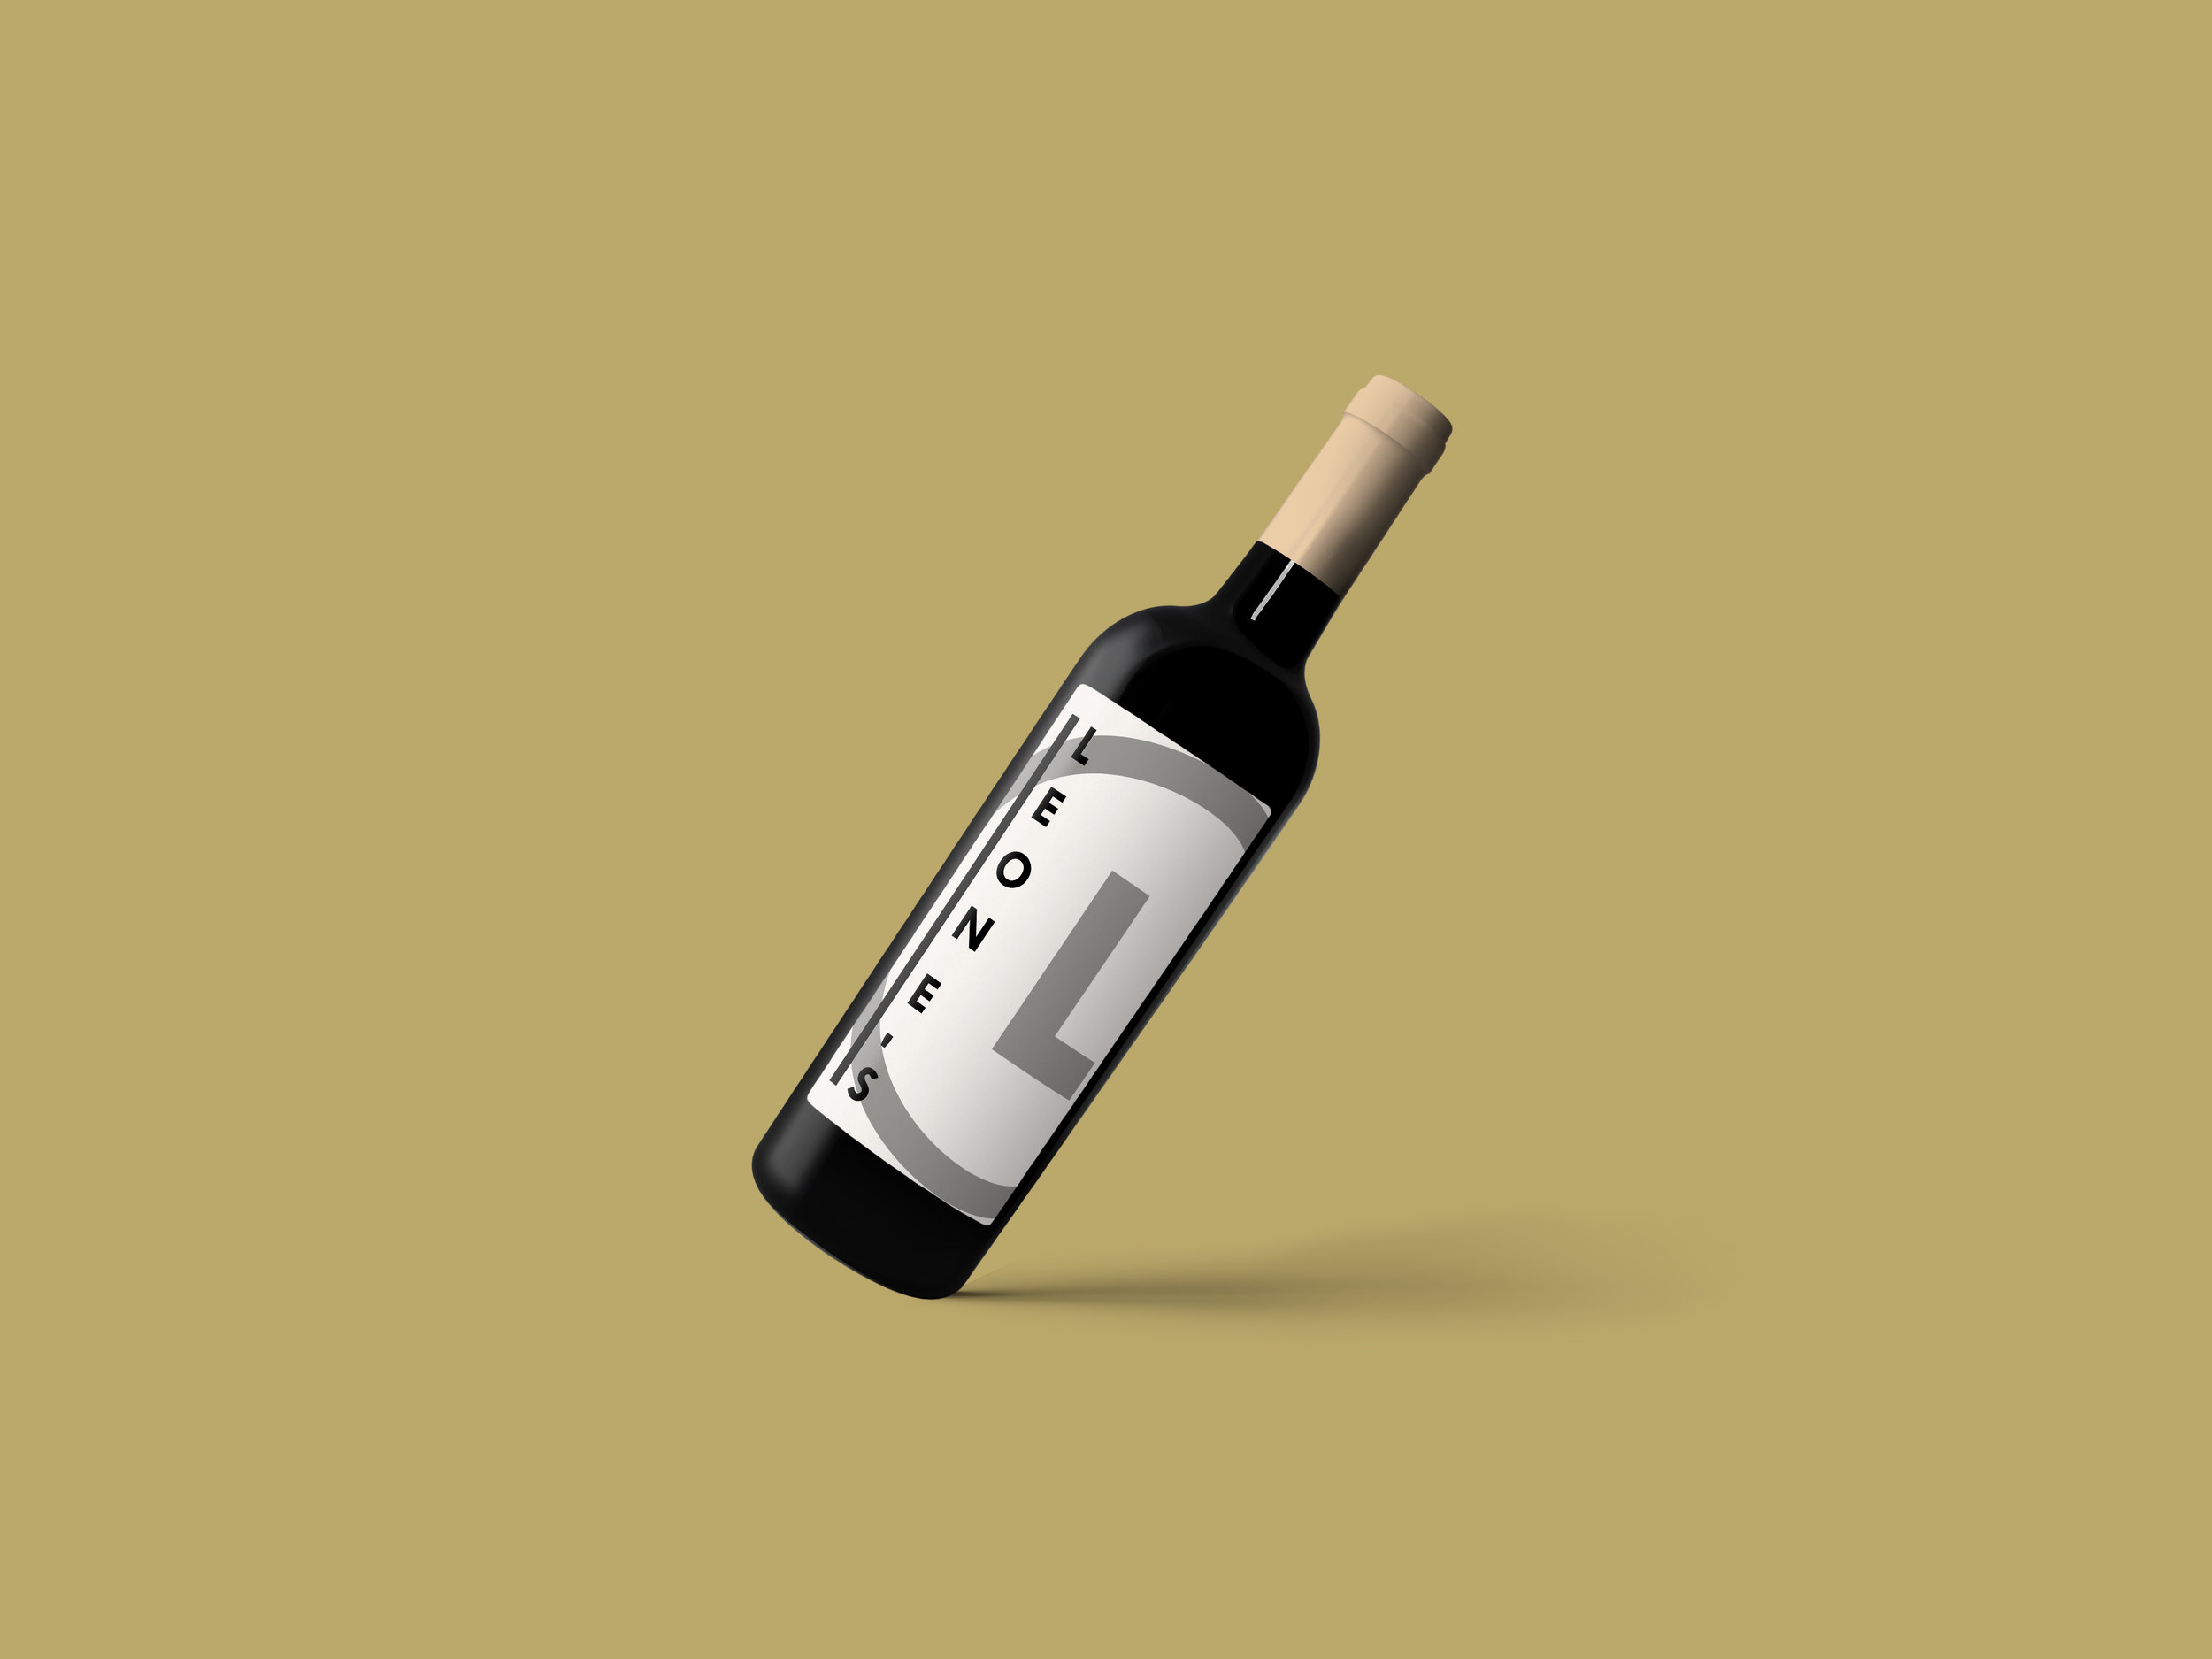 Wine Bottle Mockup Psd.jpg